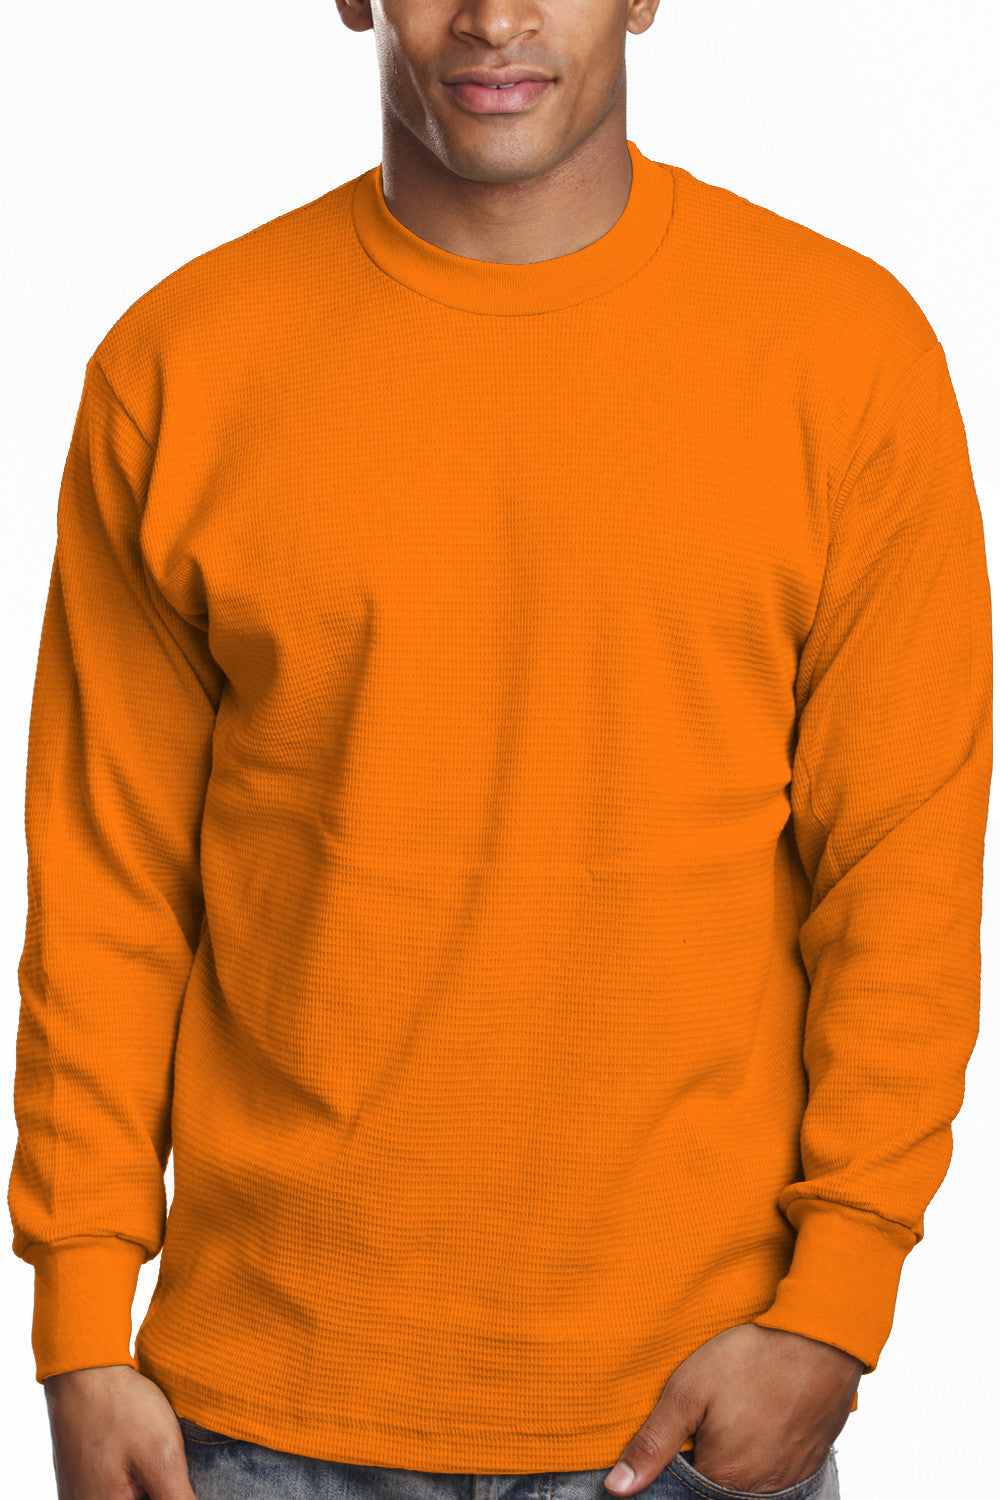 Thermal Knit Tops-Colors - Pro 5 Apparel